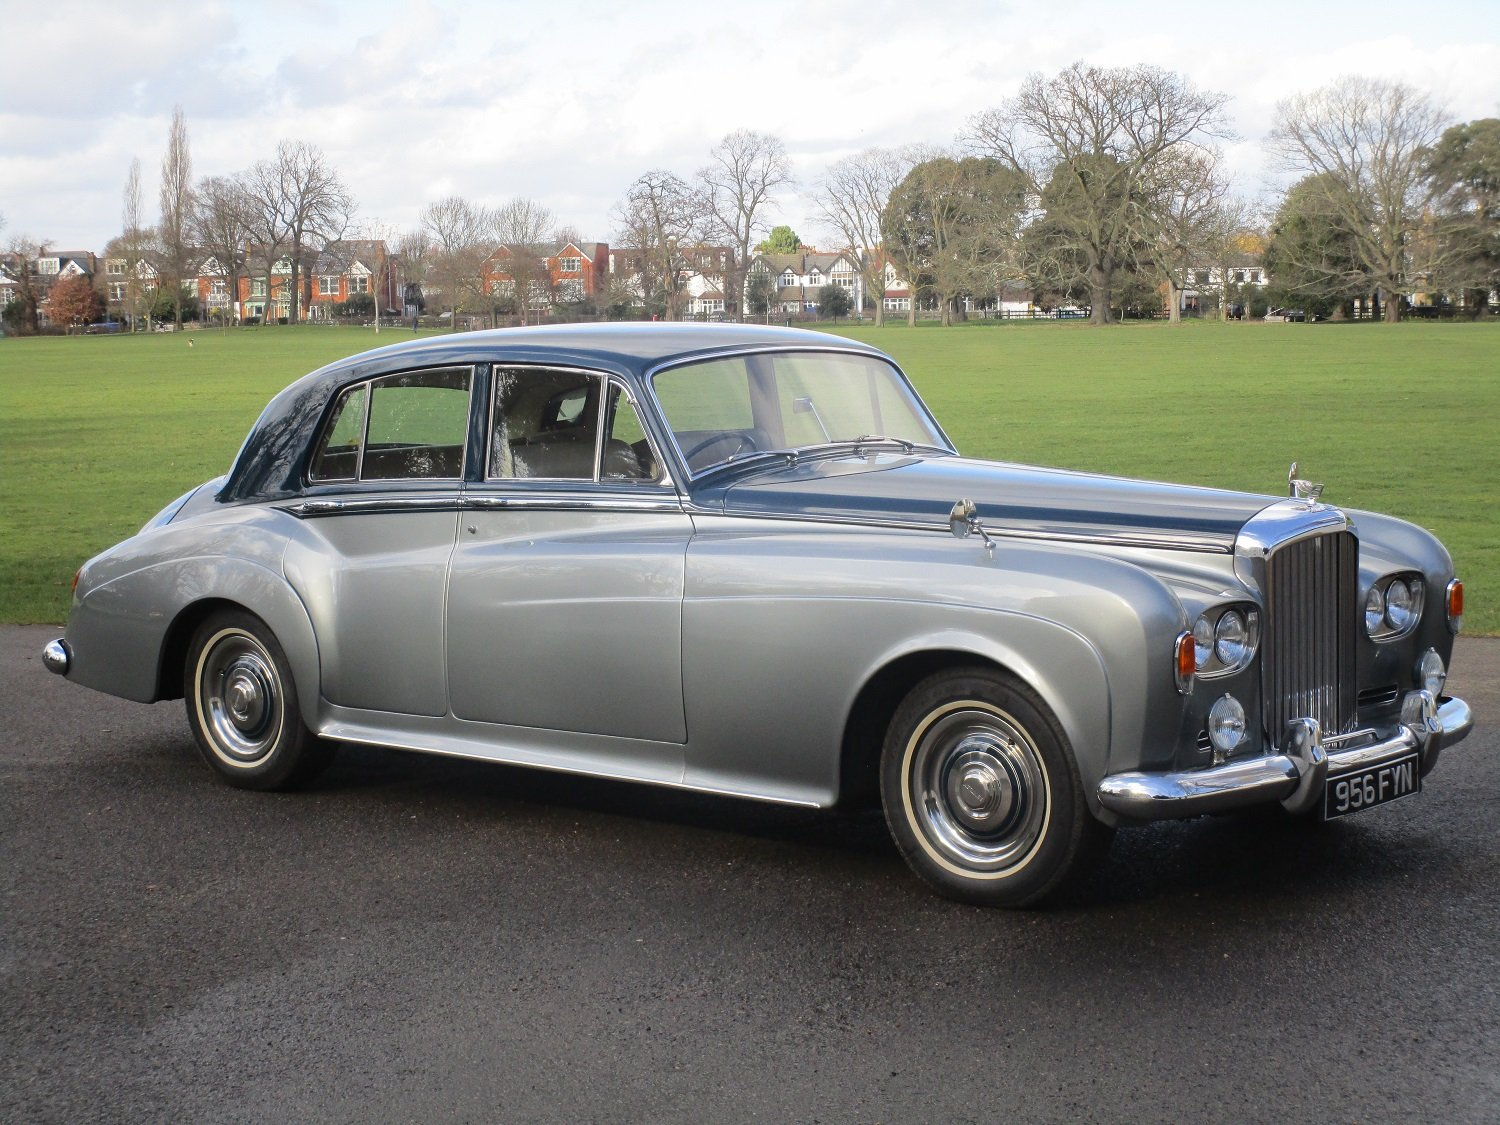 1963 Bentley S3 Standard Steel Saloon  For Sale (picture 1 of 1)